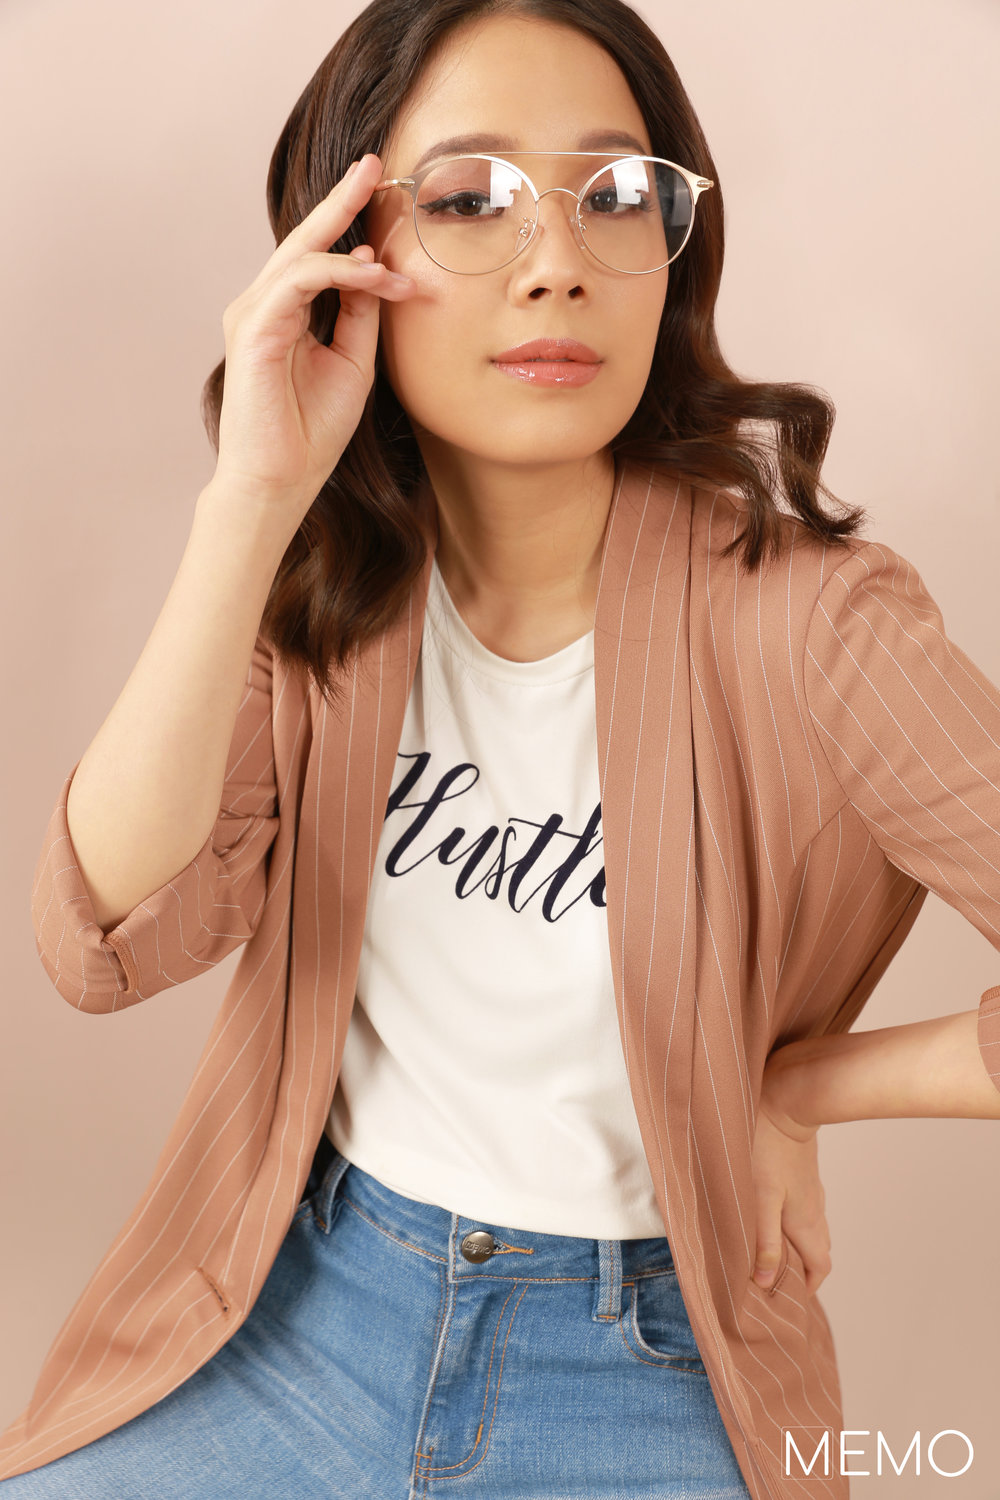 """Try to find the balance…because your passion and happiness will evolve and it will look different as you experience more."" - Hustle tee, P499Striped blazer, P1499Mid-waist jeans, P999"